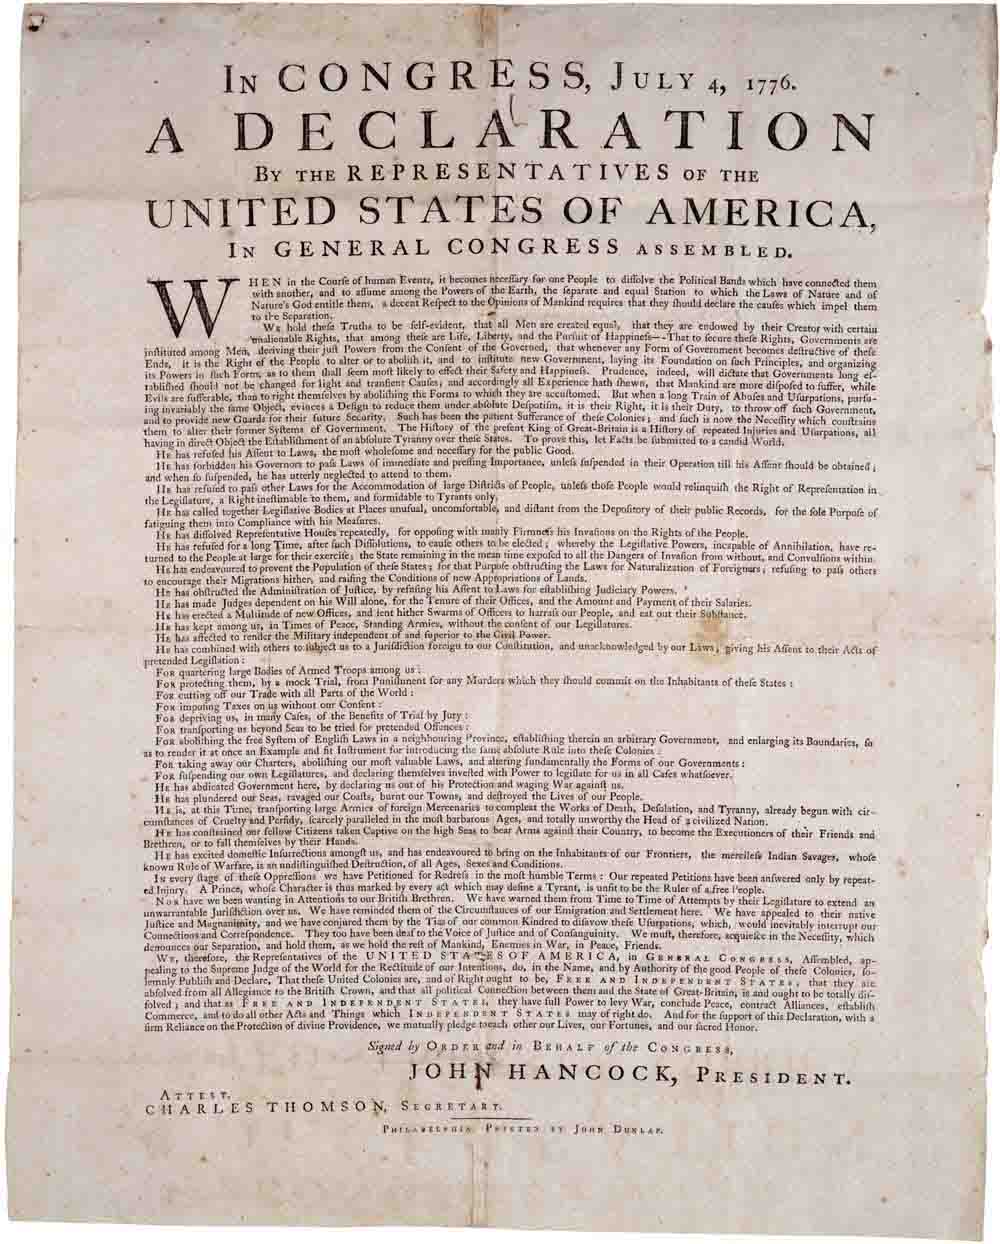 an introduction to the declaration of independence and the history of the united states A short summary of thomas jefferson's the declaration of independence (1776)   the reasons the british colonies of north america sought independence in july  of 1776 the declaration opens with a preamble describing the document's  necessity  in this case, a long history of abuses has led the colonists to  overthrow a.